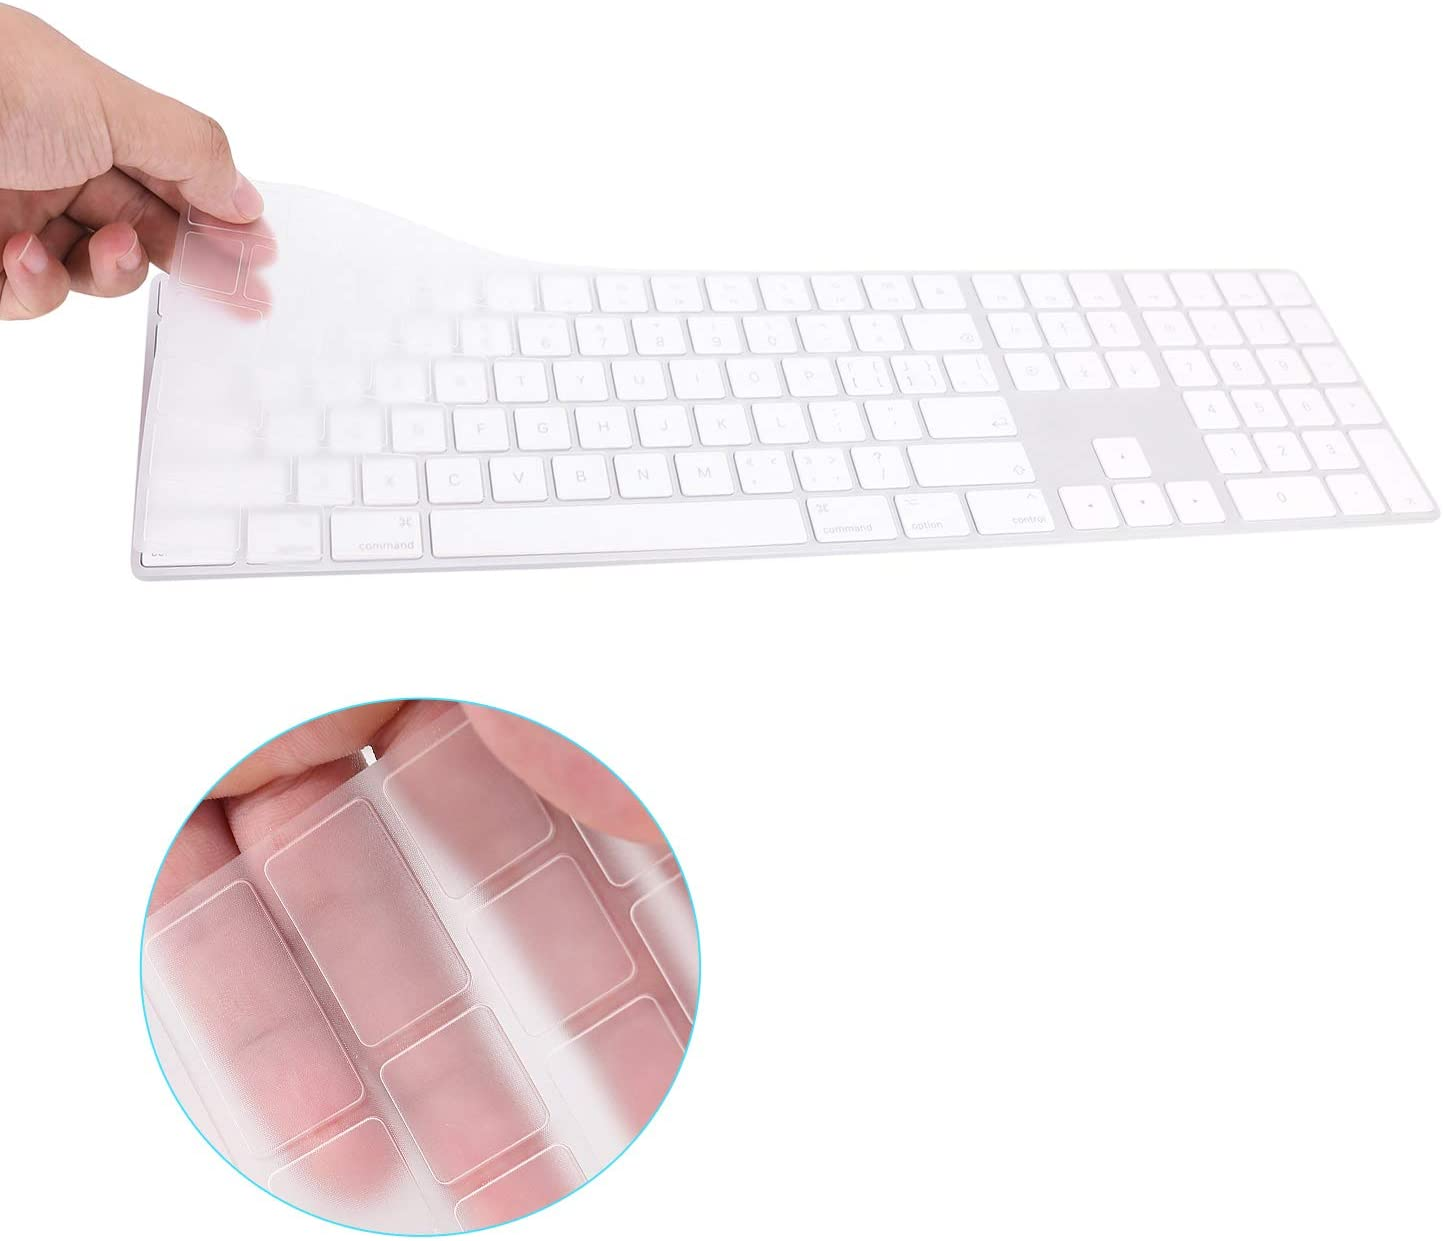 FORITO Keyboard Cover Compatible with 2017-2019 Apple Magic Keyboard with Numeric Keypad US Layout Model MQ052LL/A and A1843-Clear